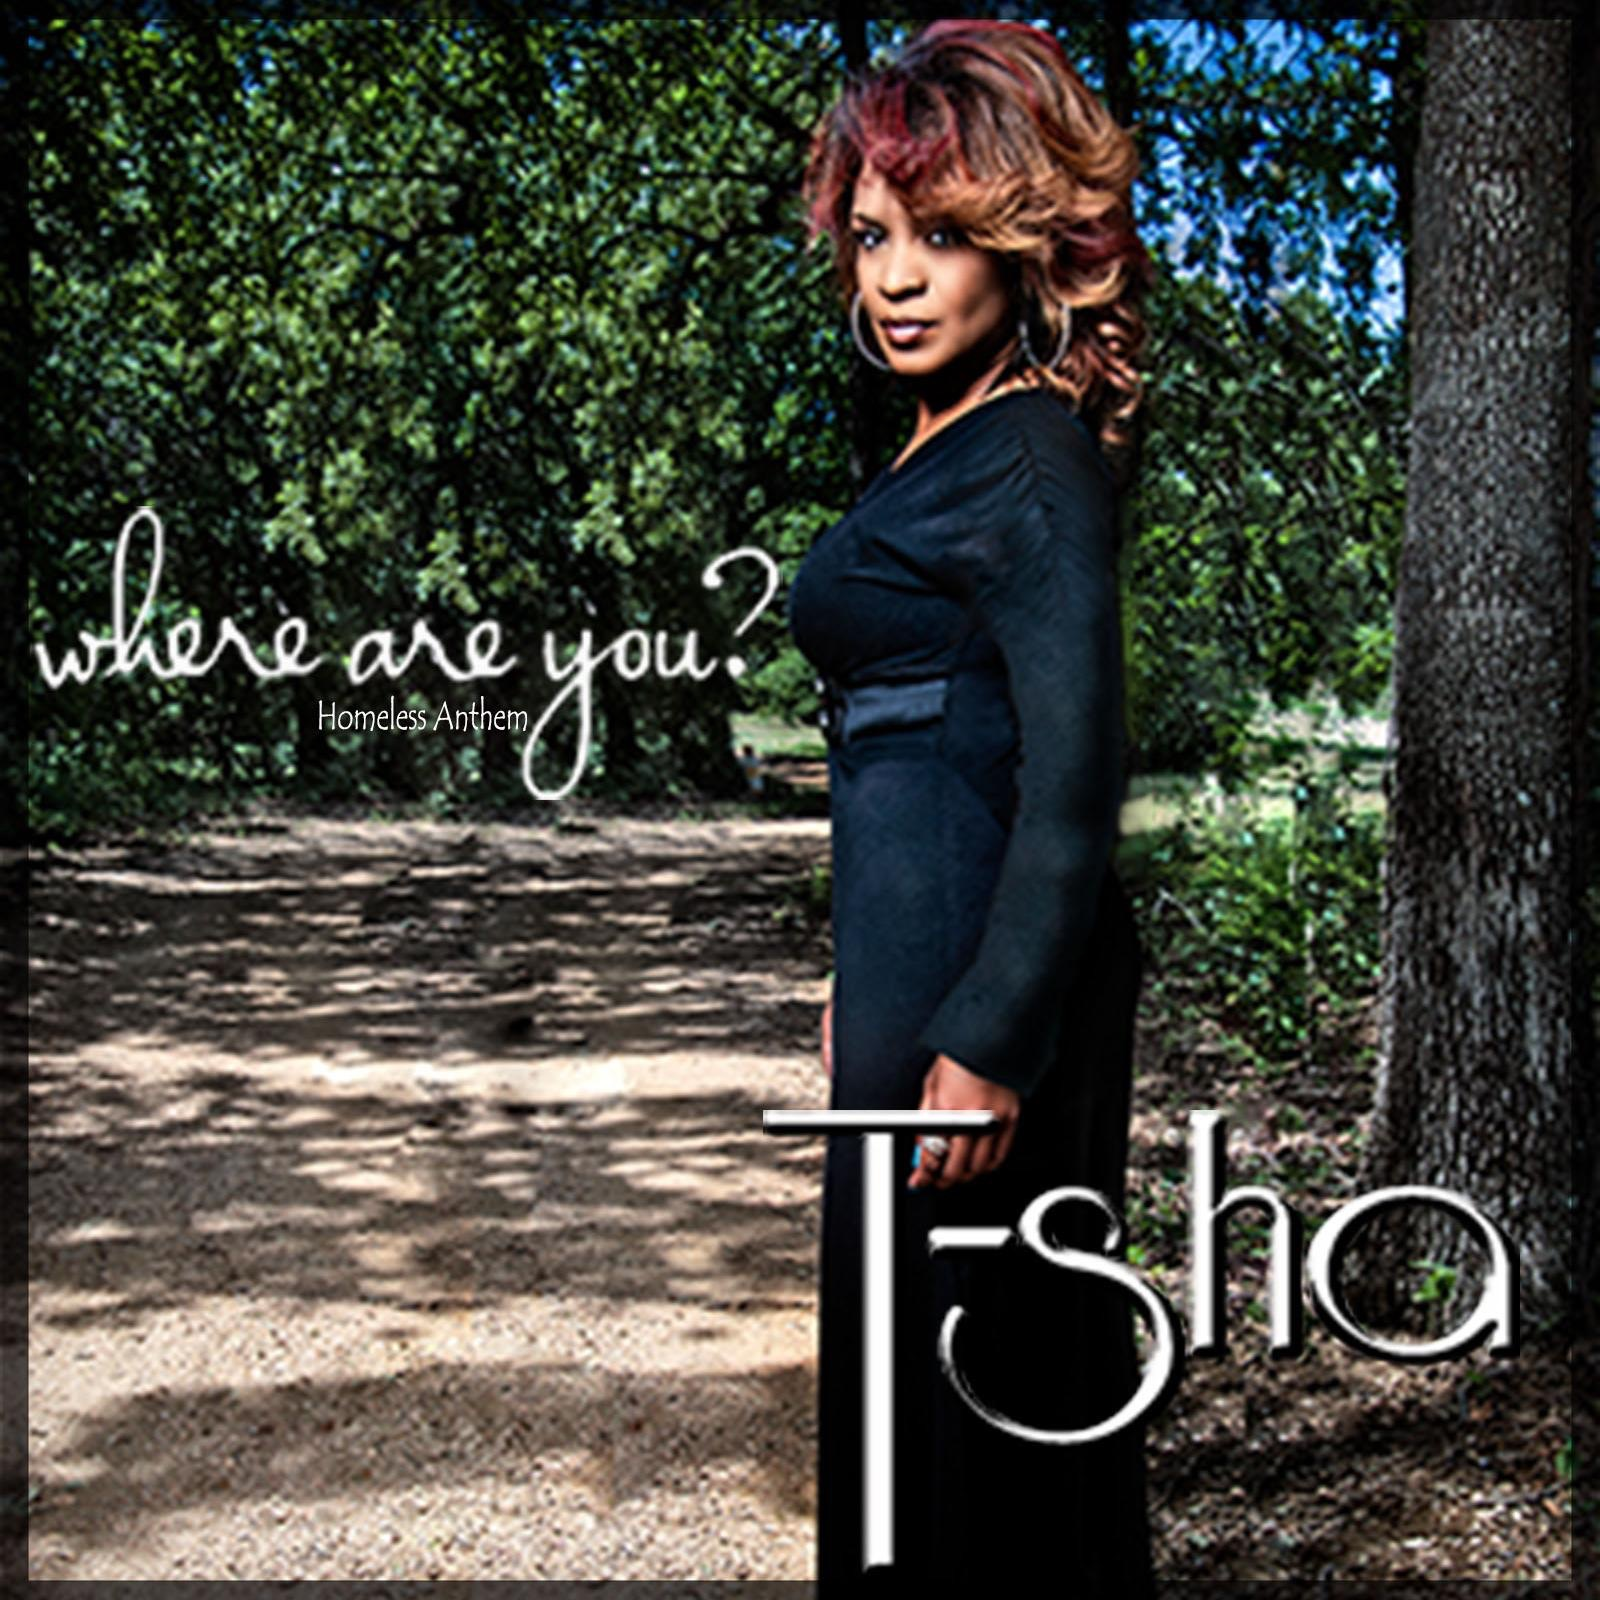 Where Are You? (Remixed) - EP